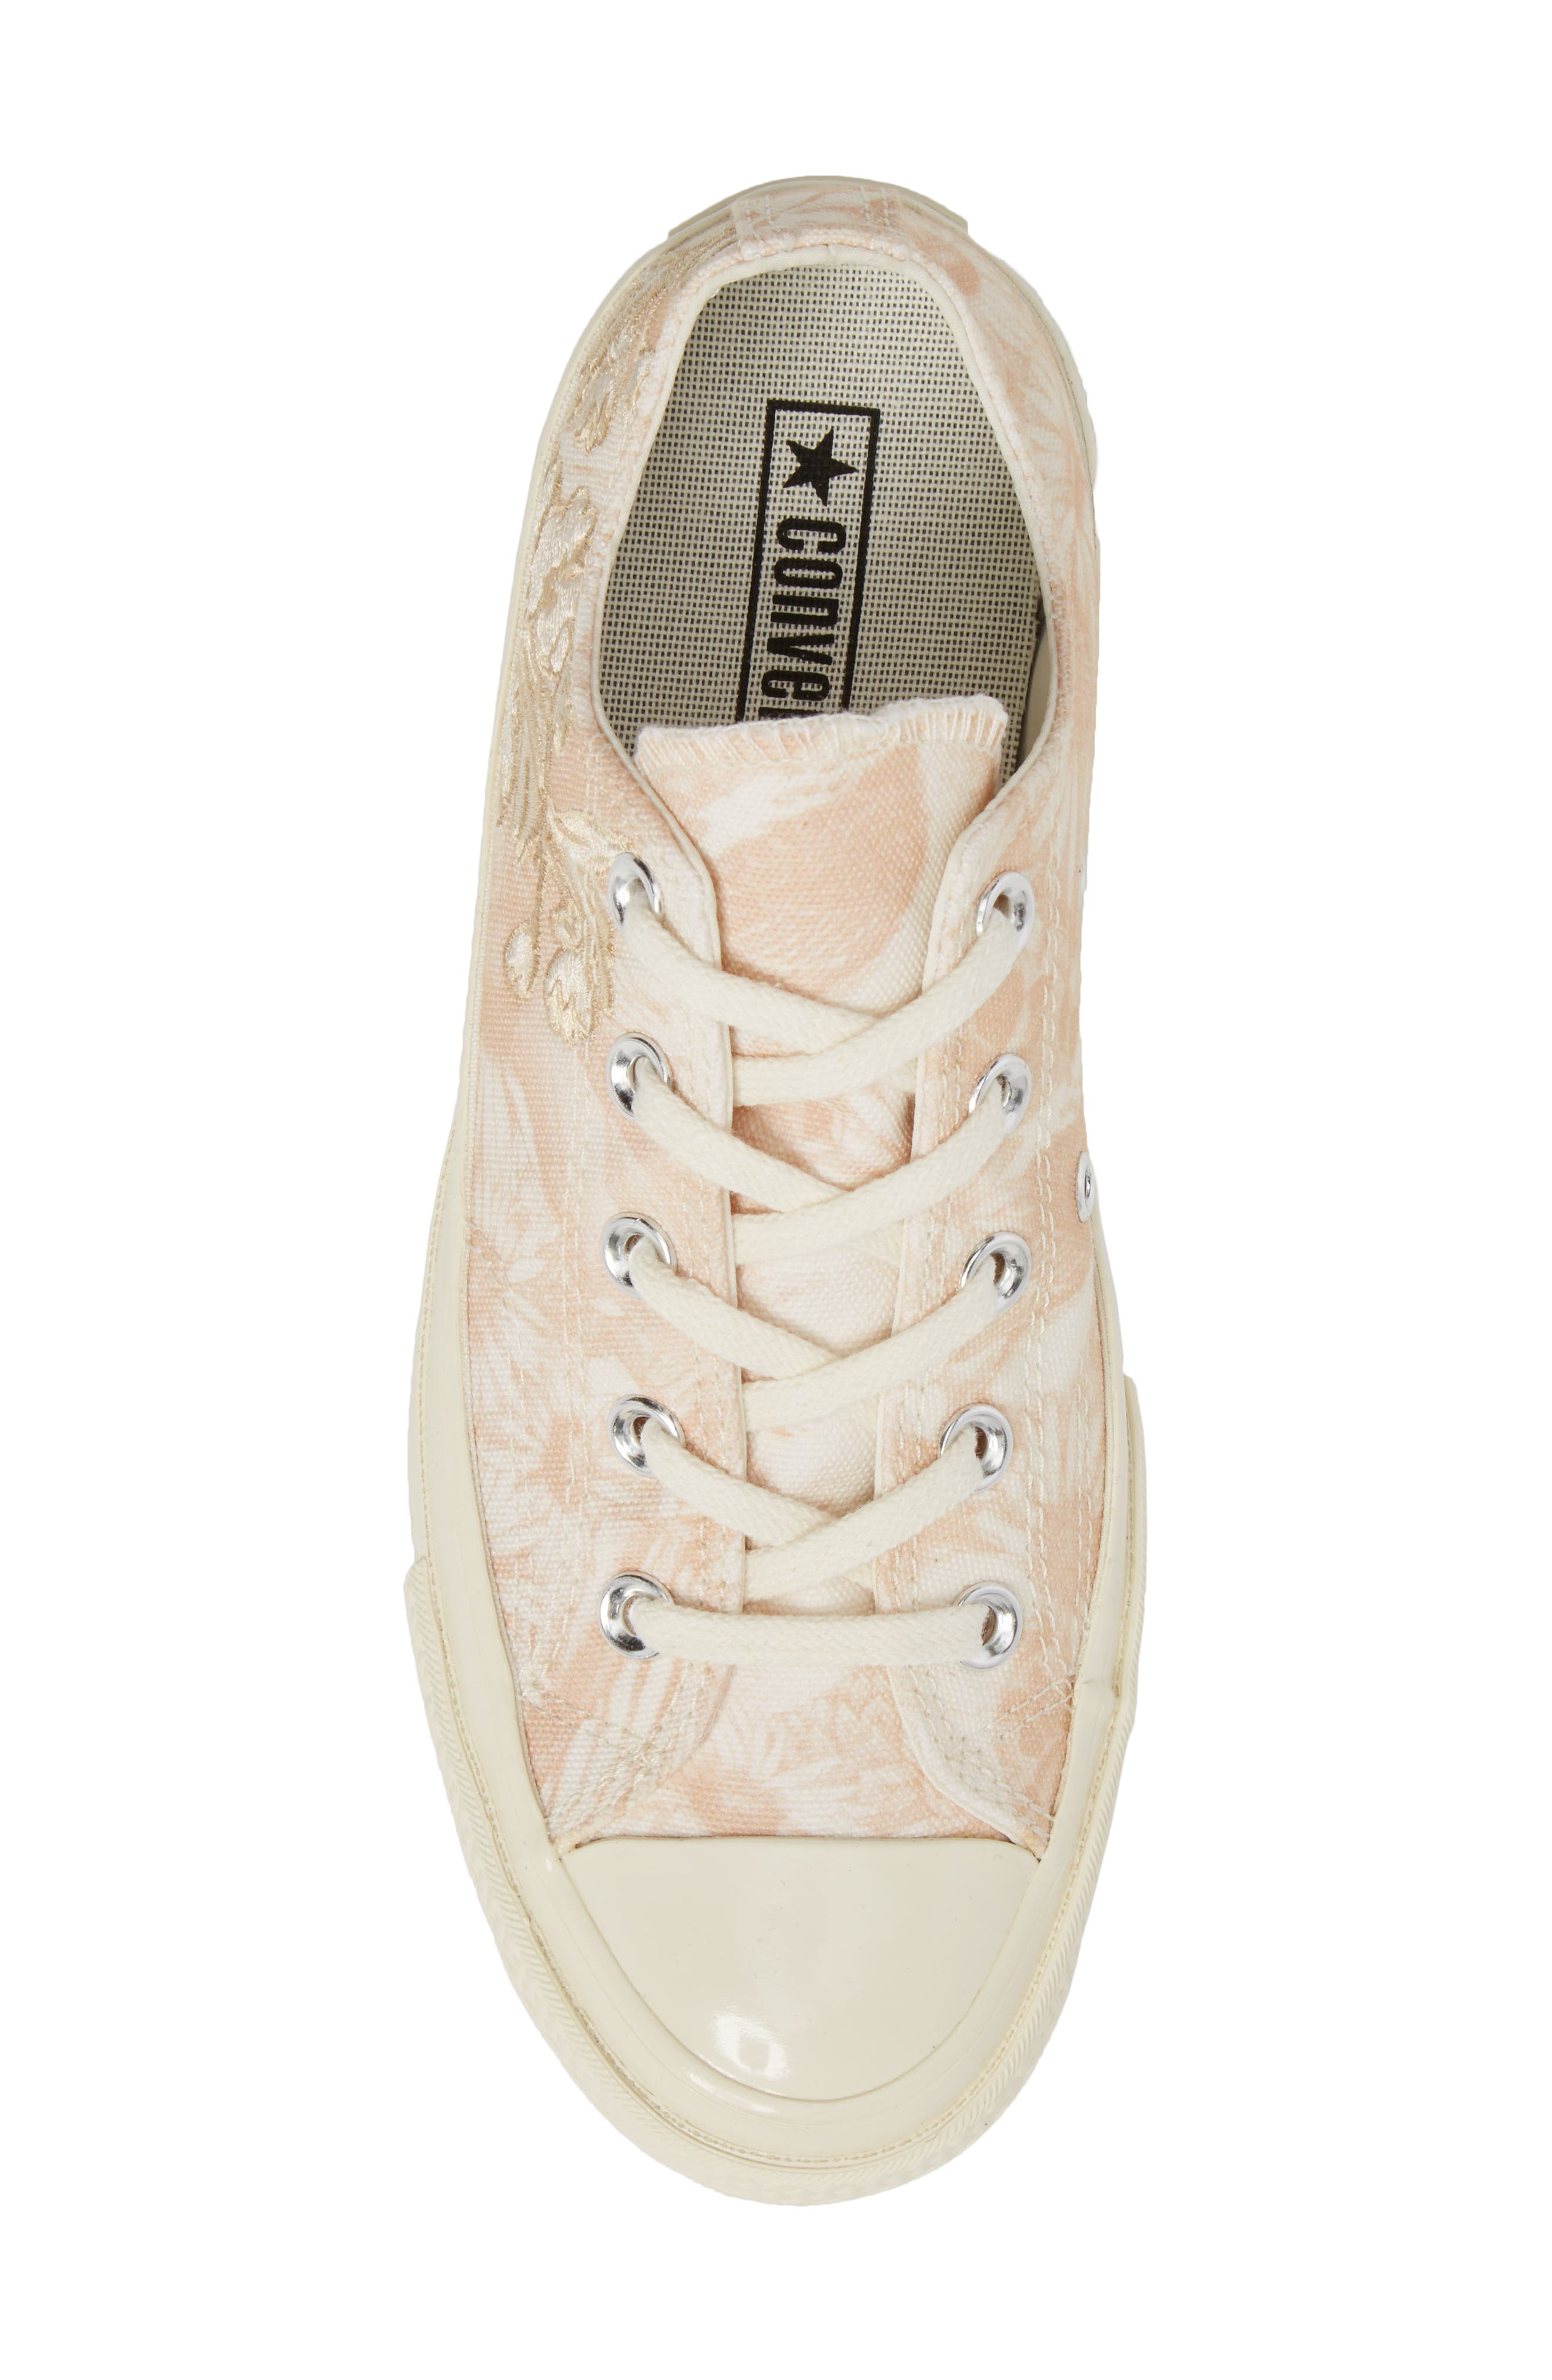 Chuck Taylor<sup>®</sup> All Star<sup>®</sup> 70 Spring Forward Sneaker,                             Alternate thumbnail 5, color,                             Egret/ Egret